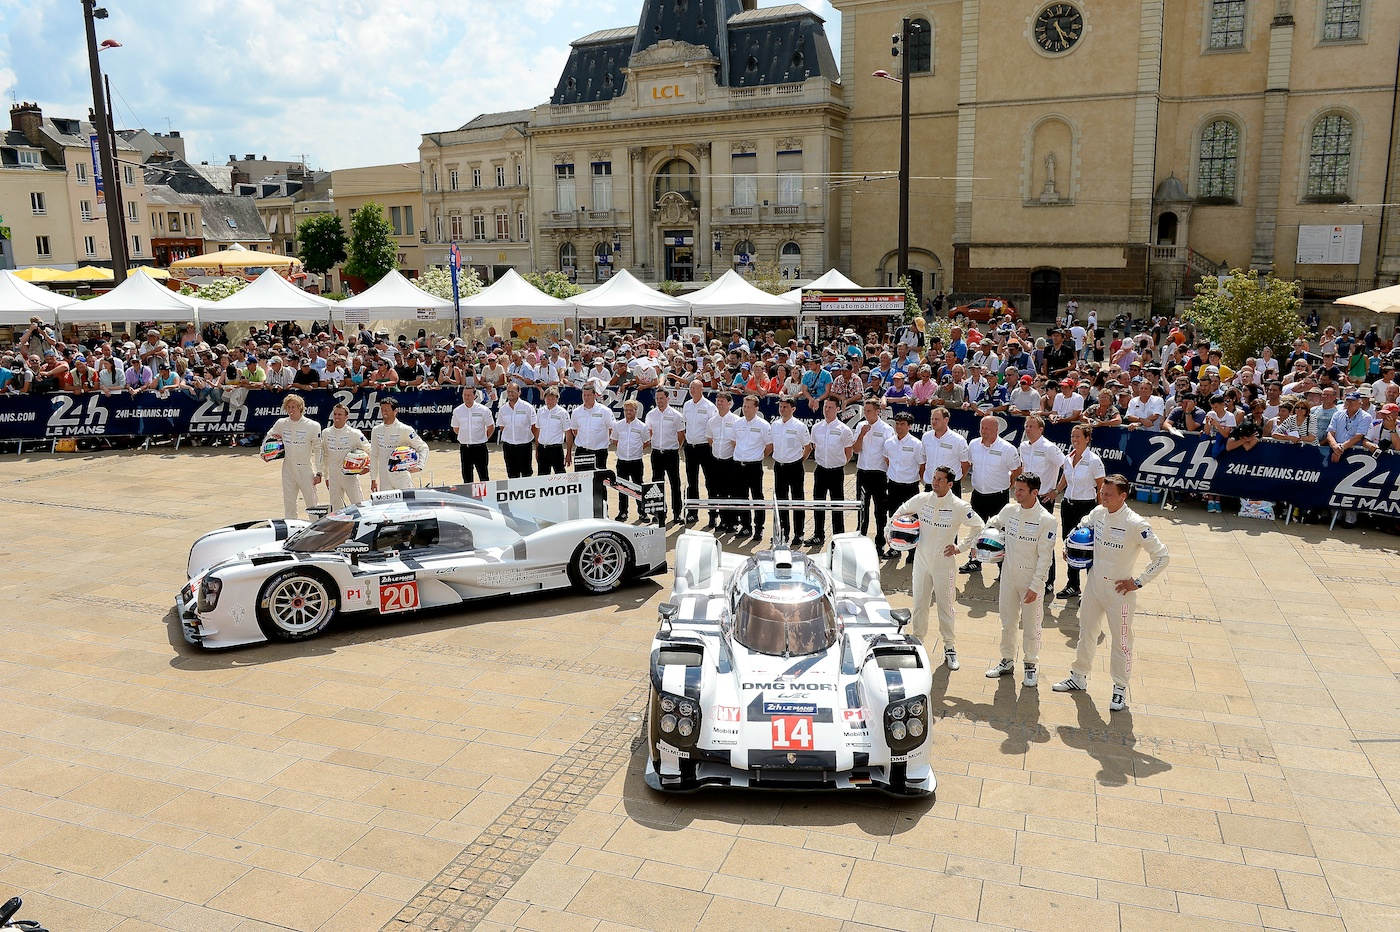 The 'Big Three' at Le Mans in 2014